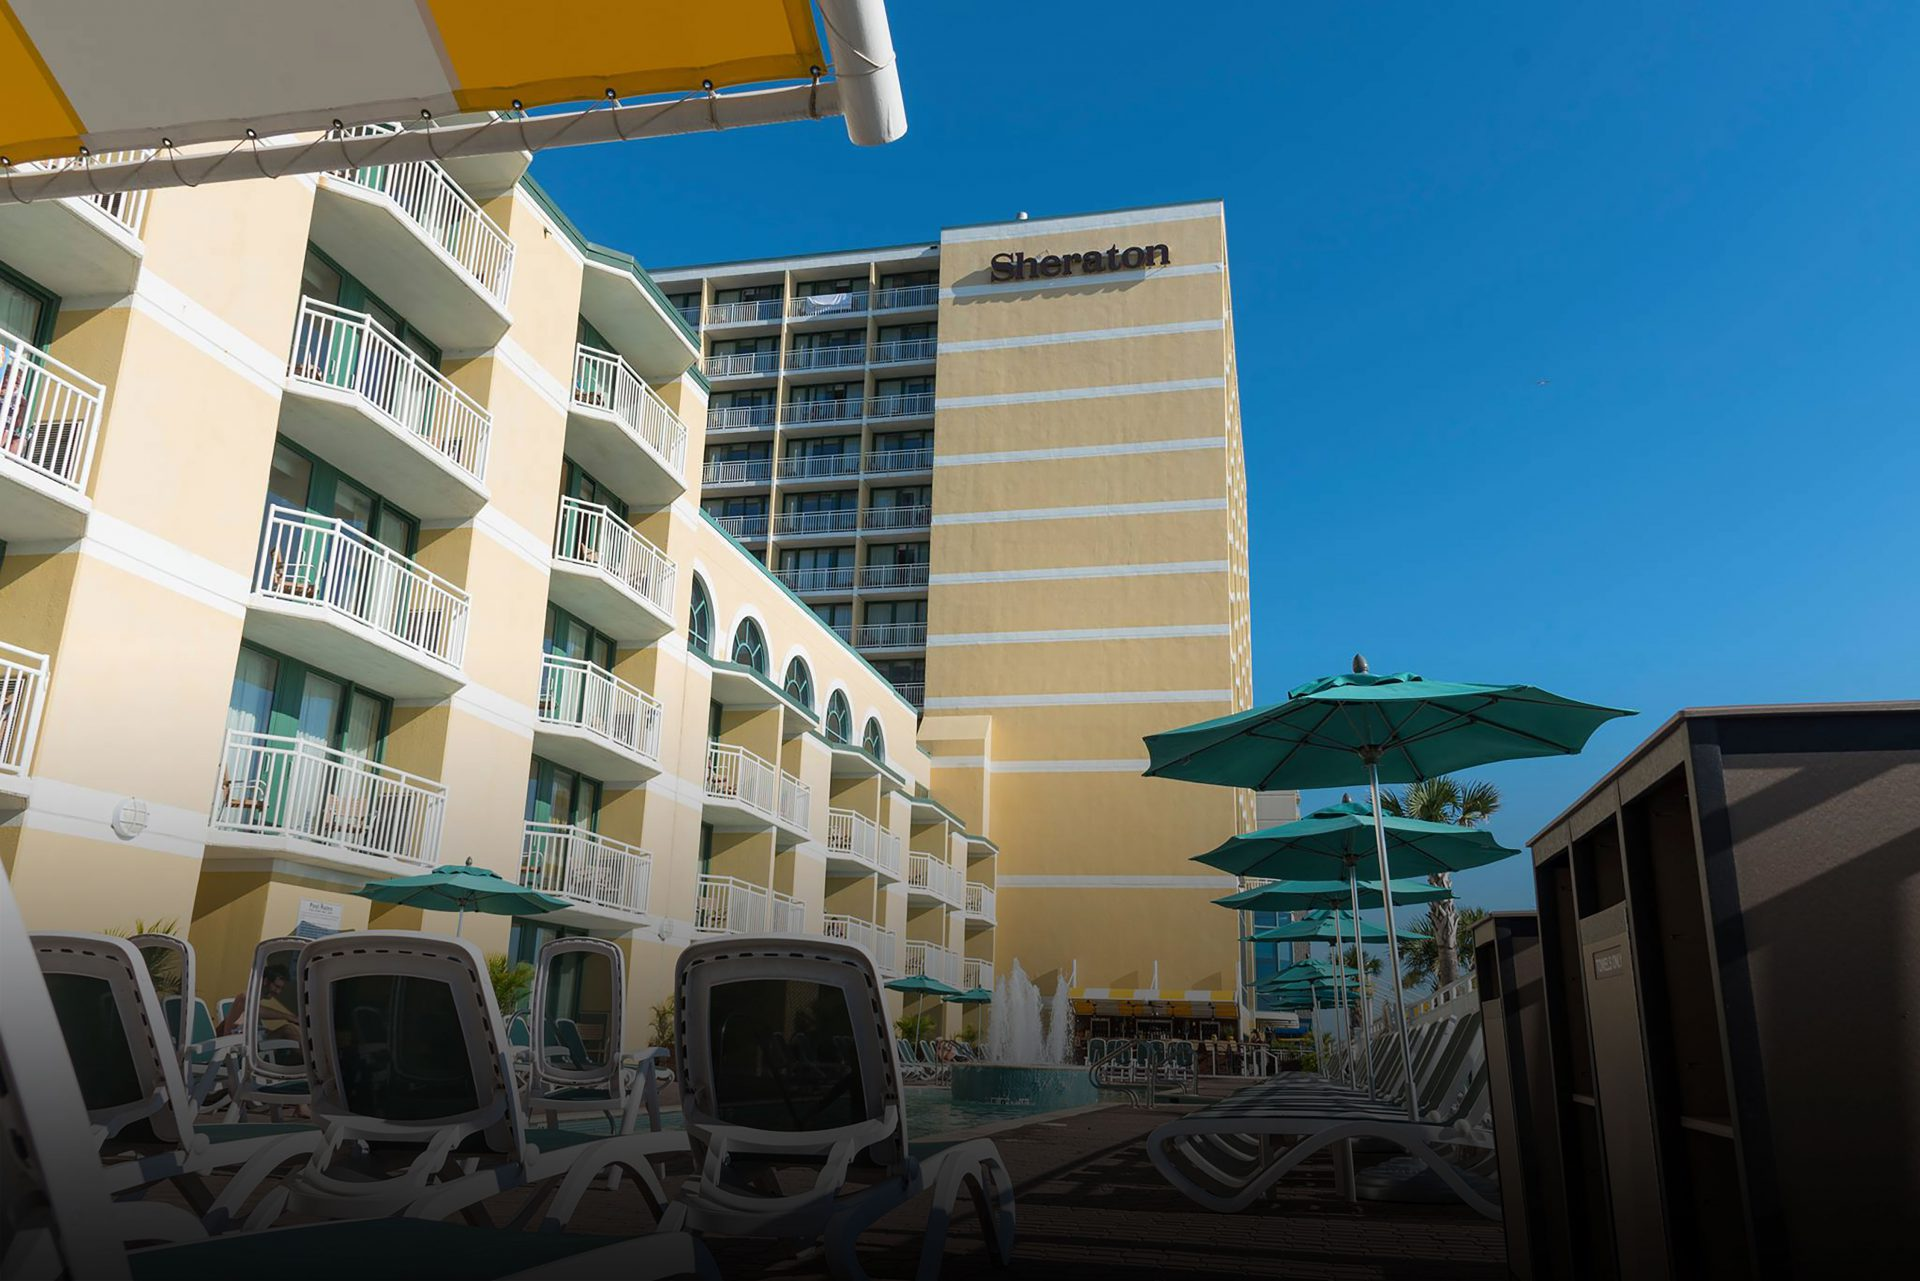 Shamin Hotels Acquires the Sheraton Virginia Beach Oceanfront Hotel by Marriott